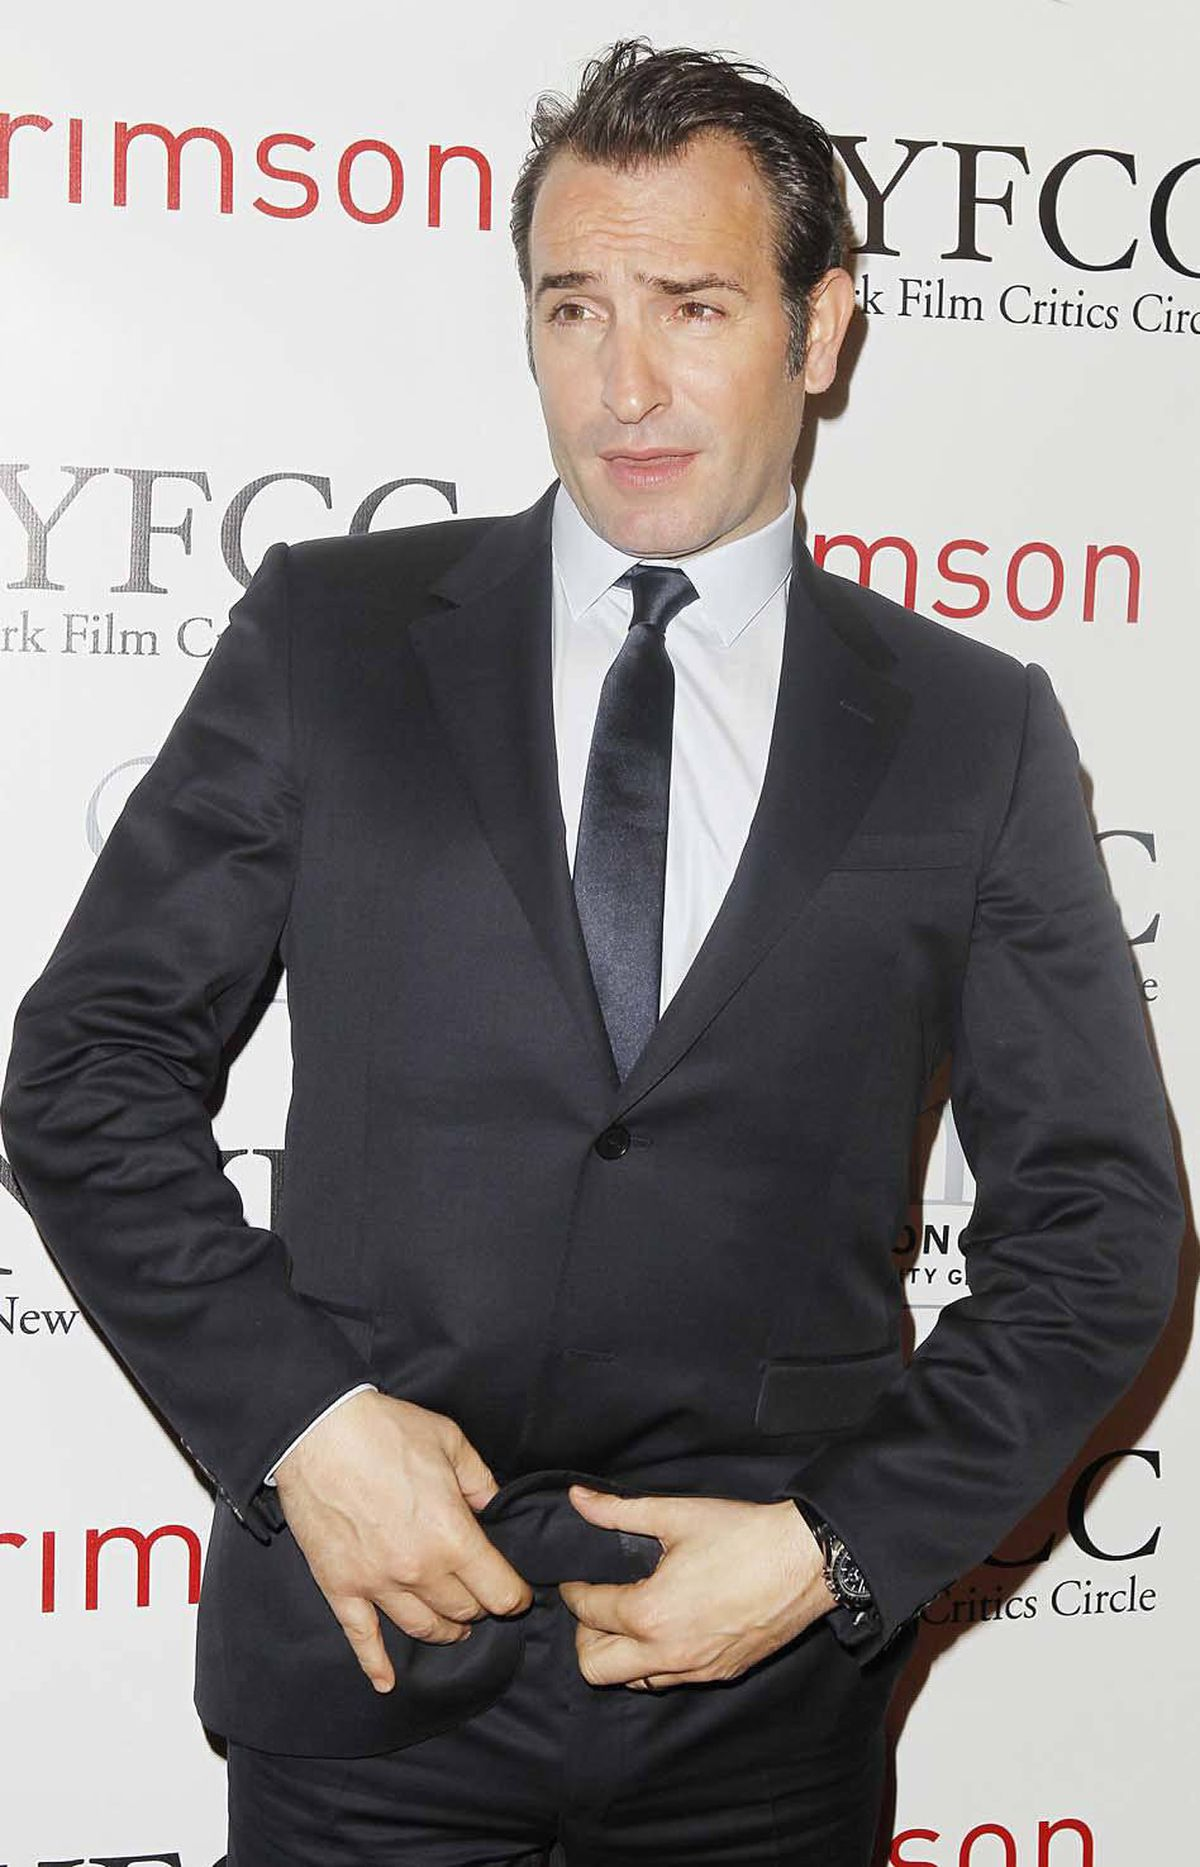 """Jean Dujardin, star of the silent film """"The Artist,"""" deals with what one hopes is a wardrobe malfunction on the red carpet at the New York Film Critics Circle Awards on Monday."""